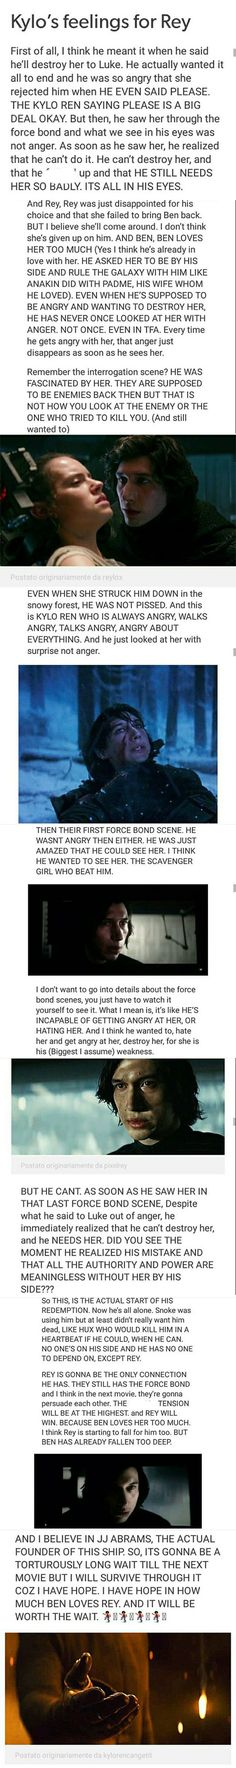 Kylo is so in love with her. I have always said that it'll be way easier for Rey to kill him to win the war then for him to kill her to win the war. I do not believe for one second that he can actually hurt her. This is a boy who has been more or less abanonded all his life by the people her were supposed to care for him the most, and here's this girl who is strong enough to save him and who will not leave him like everyone else has.